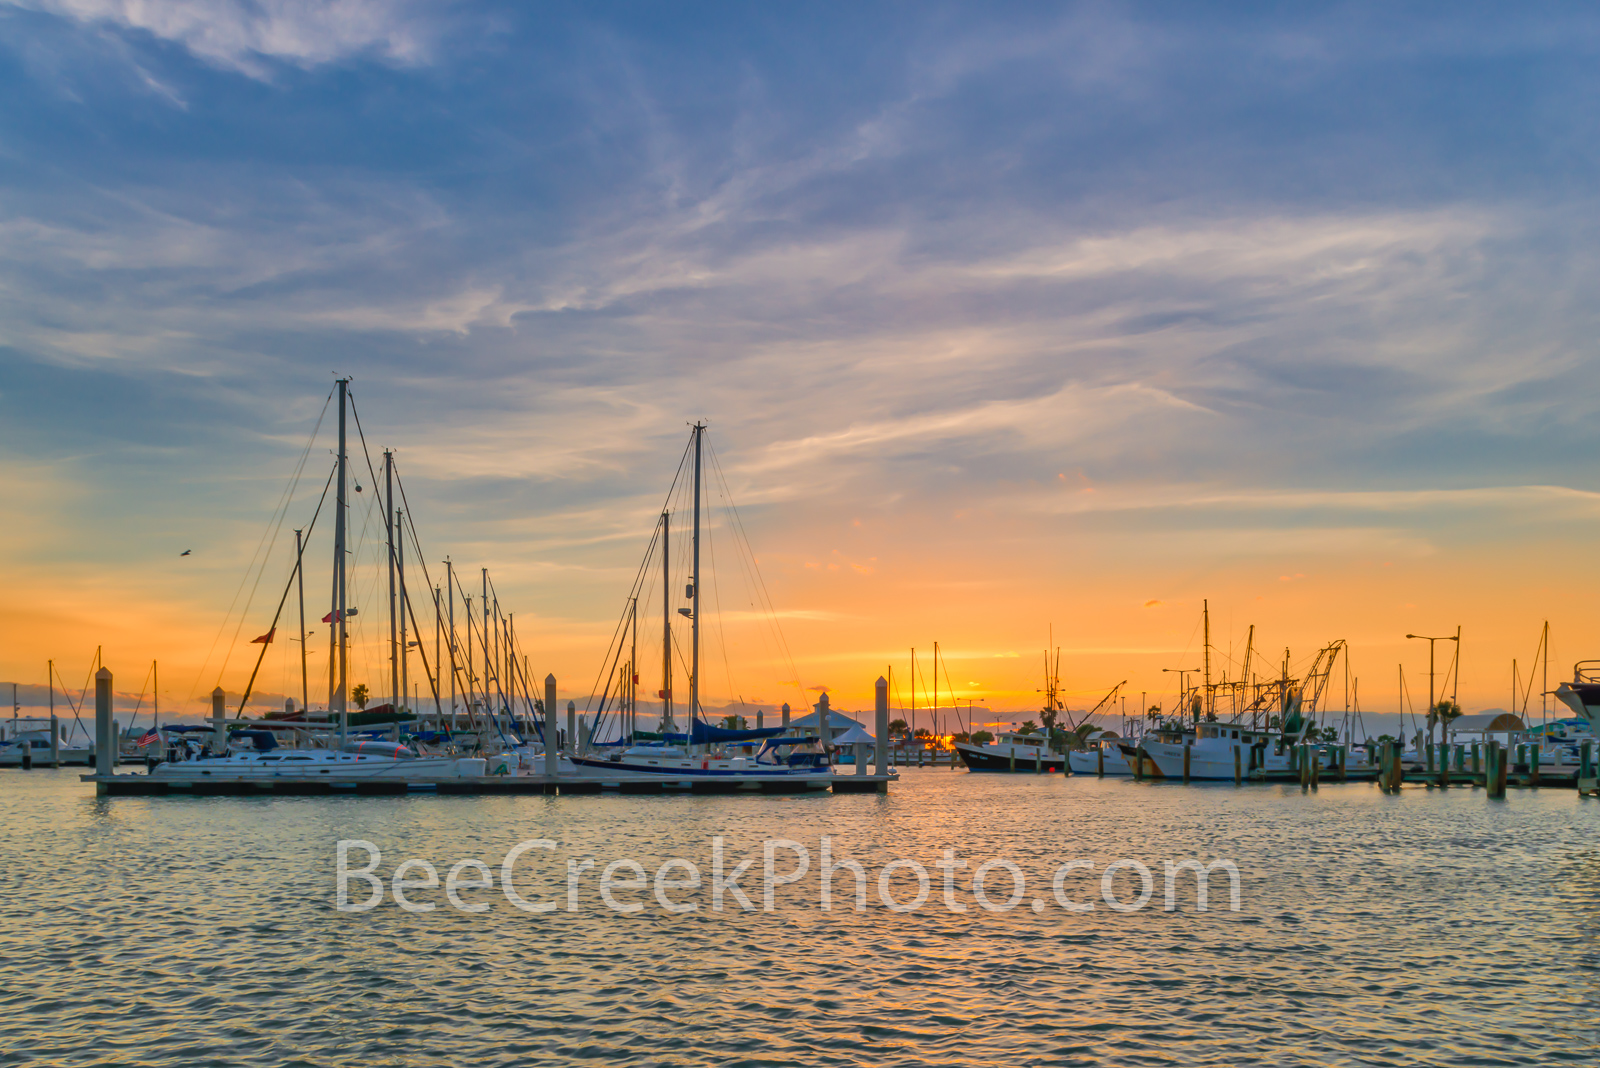 Sunrise Over the Marina - We took this photo of the sunrise over the marina in Corpus Christi Texas. The sunrise was just peaking...